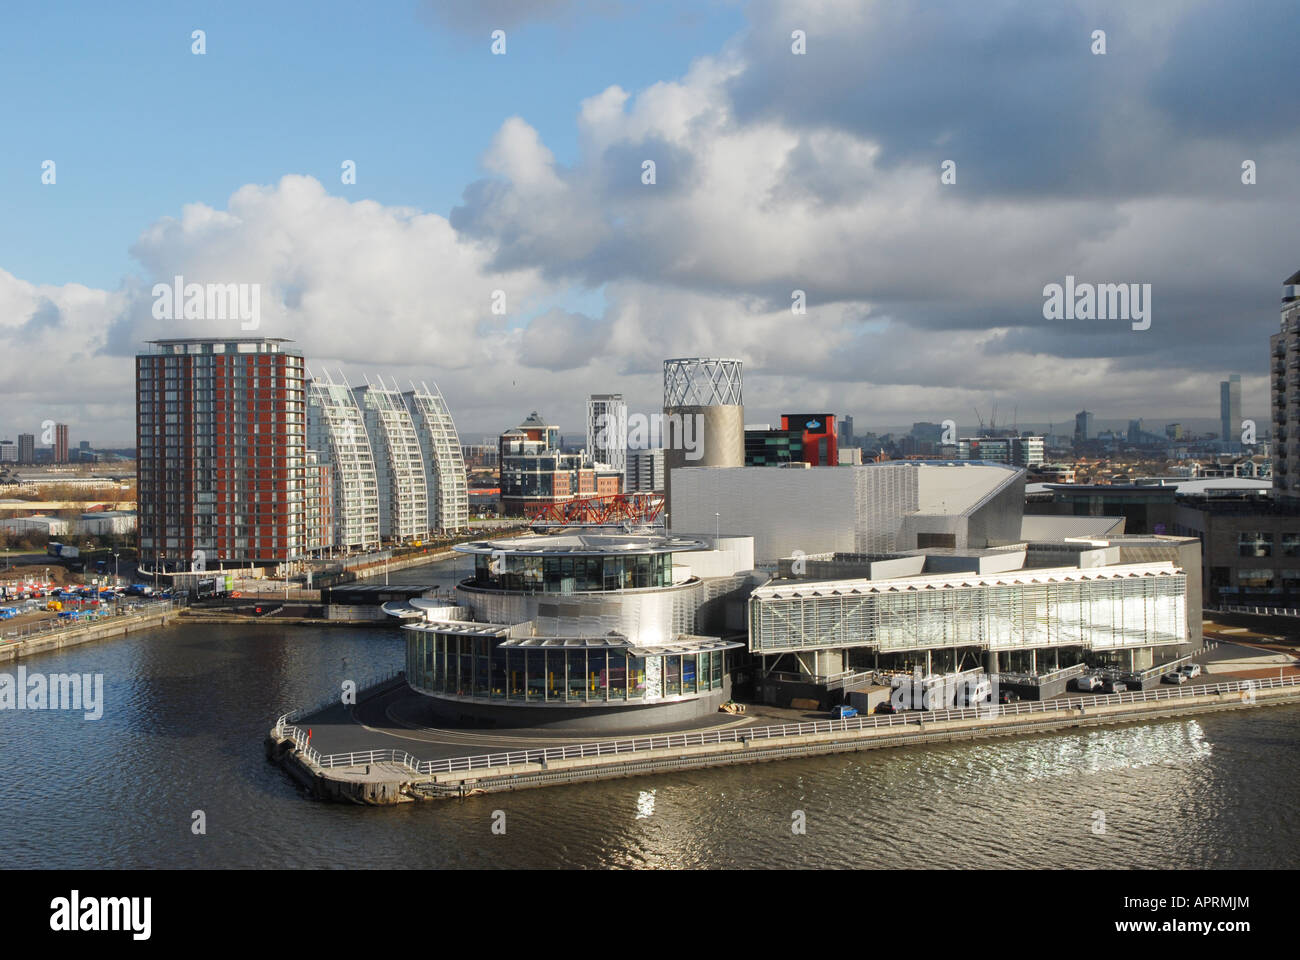 Photographer Howard Barlow SALFORD QUAYS showing LOWRY THEATRE - Stock Image